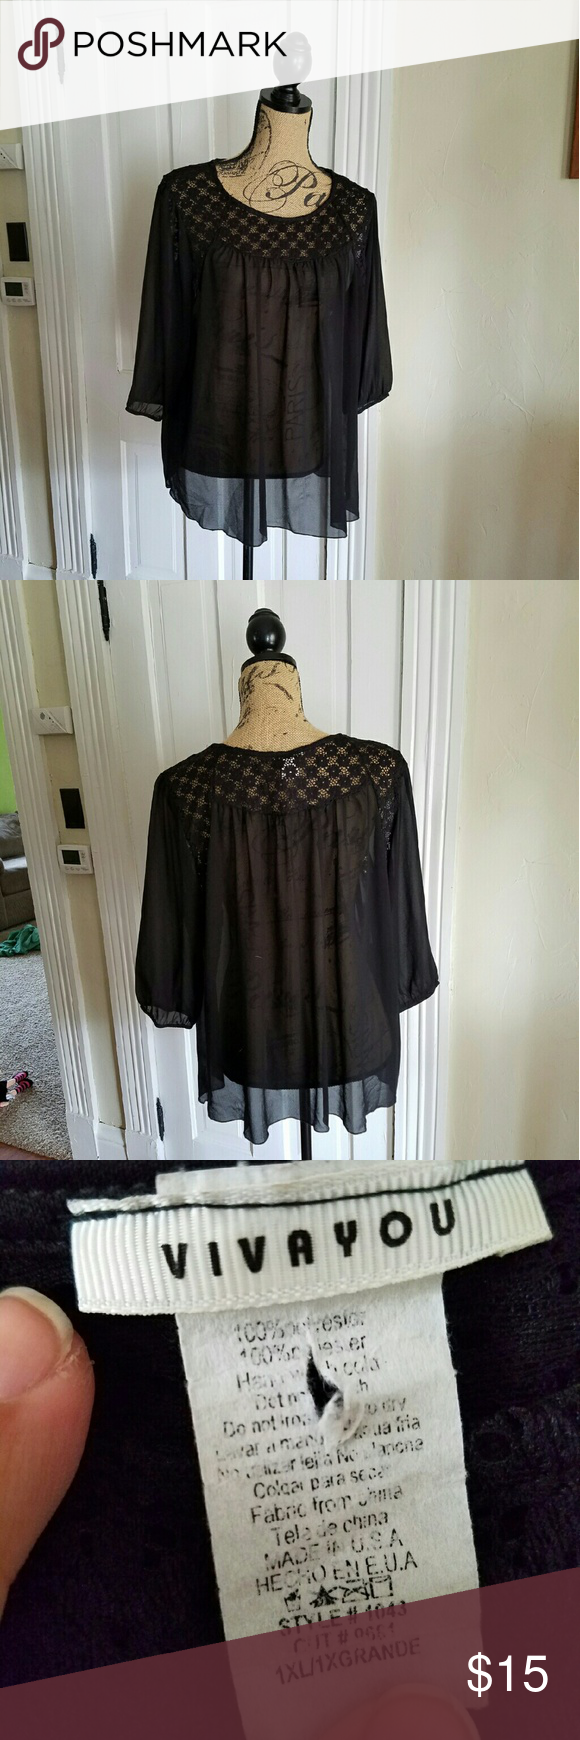 Vivayou Black Sheer & Lace Black Top Gently used Stretchy Sheer Lace contrast Vivayou Tops Blouses